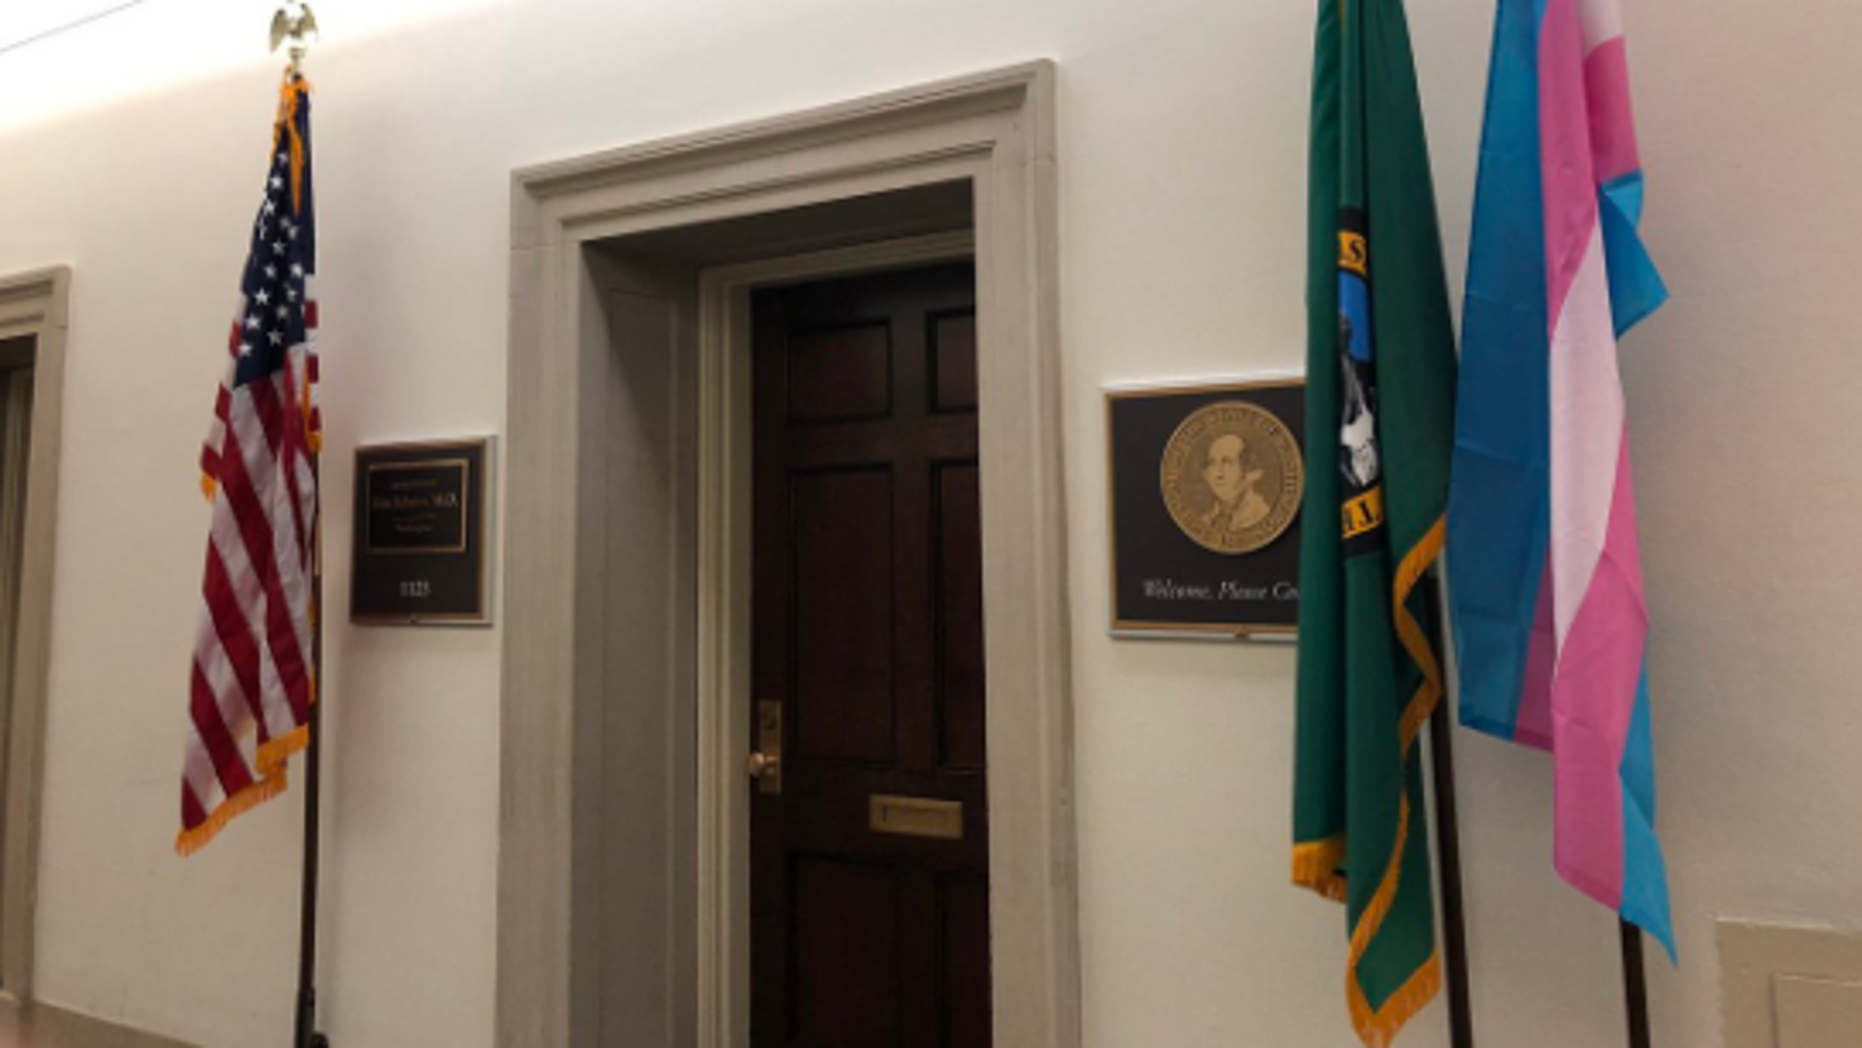 A transgender pride flag, displayed in front of Democratic Rep. Kim Schrier's office.